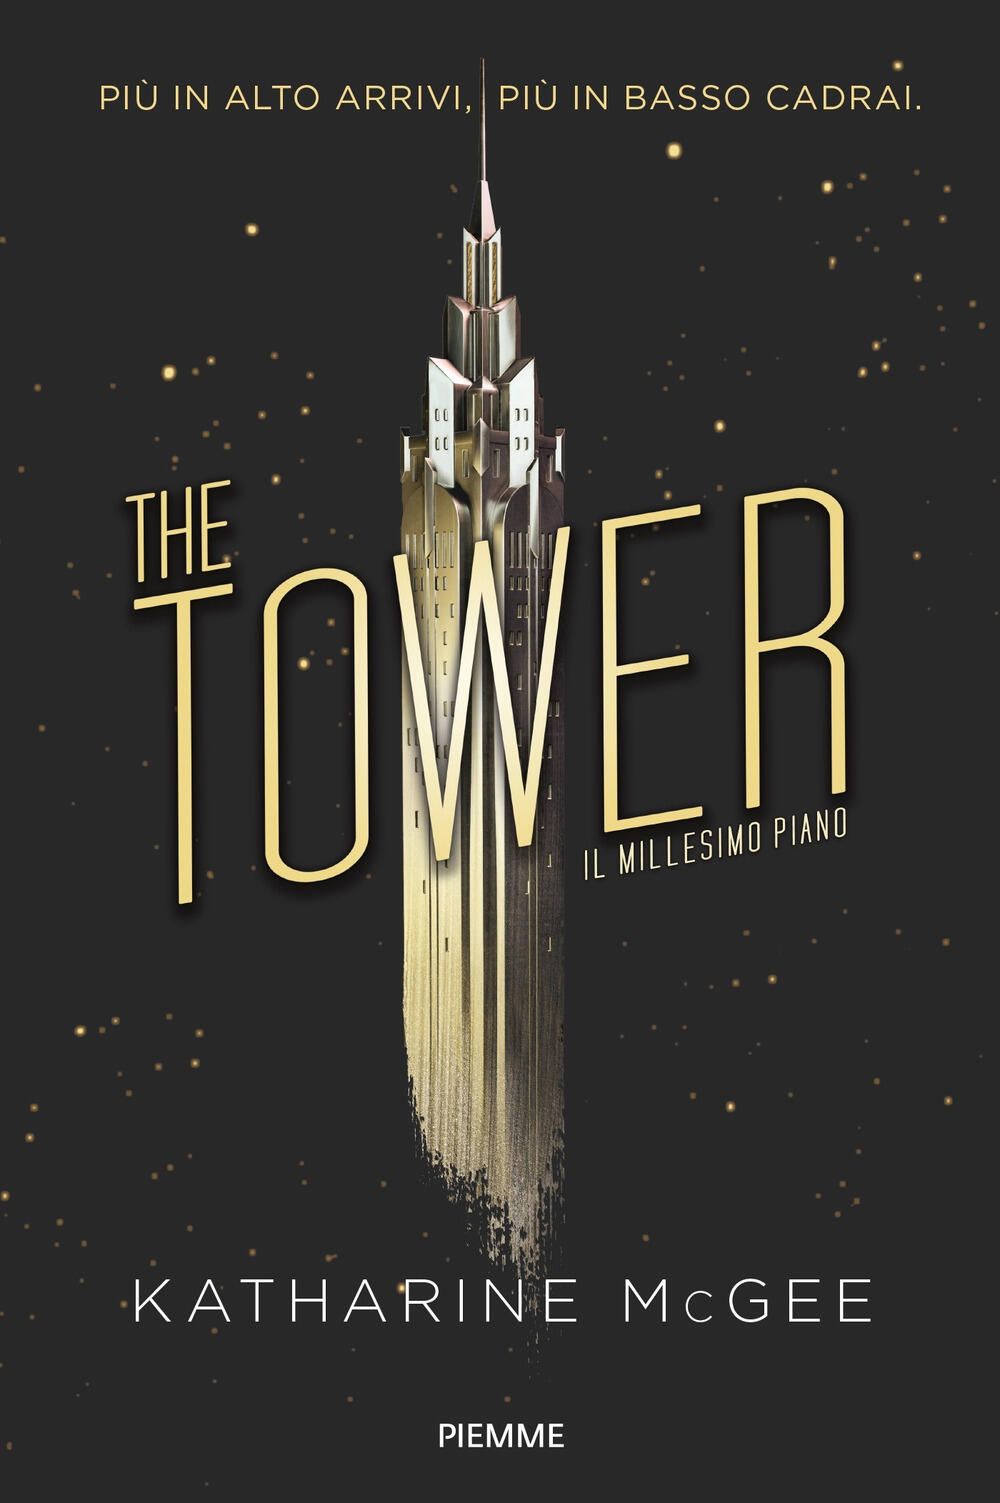 Image result for the tower libro